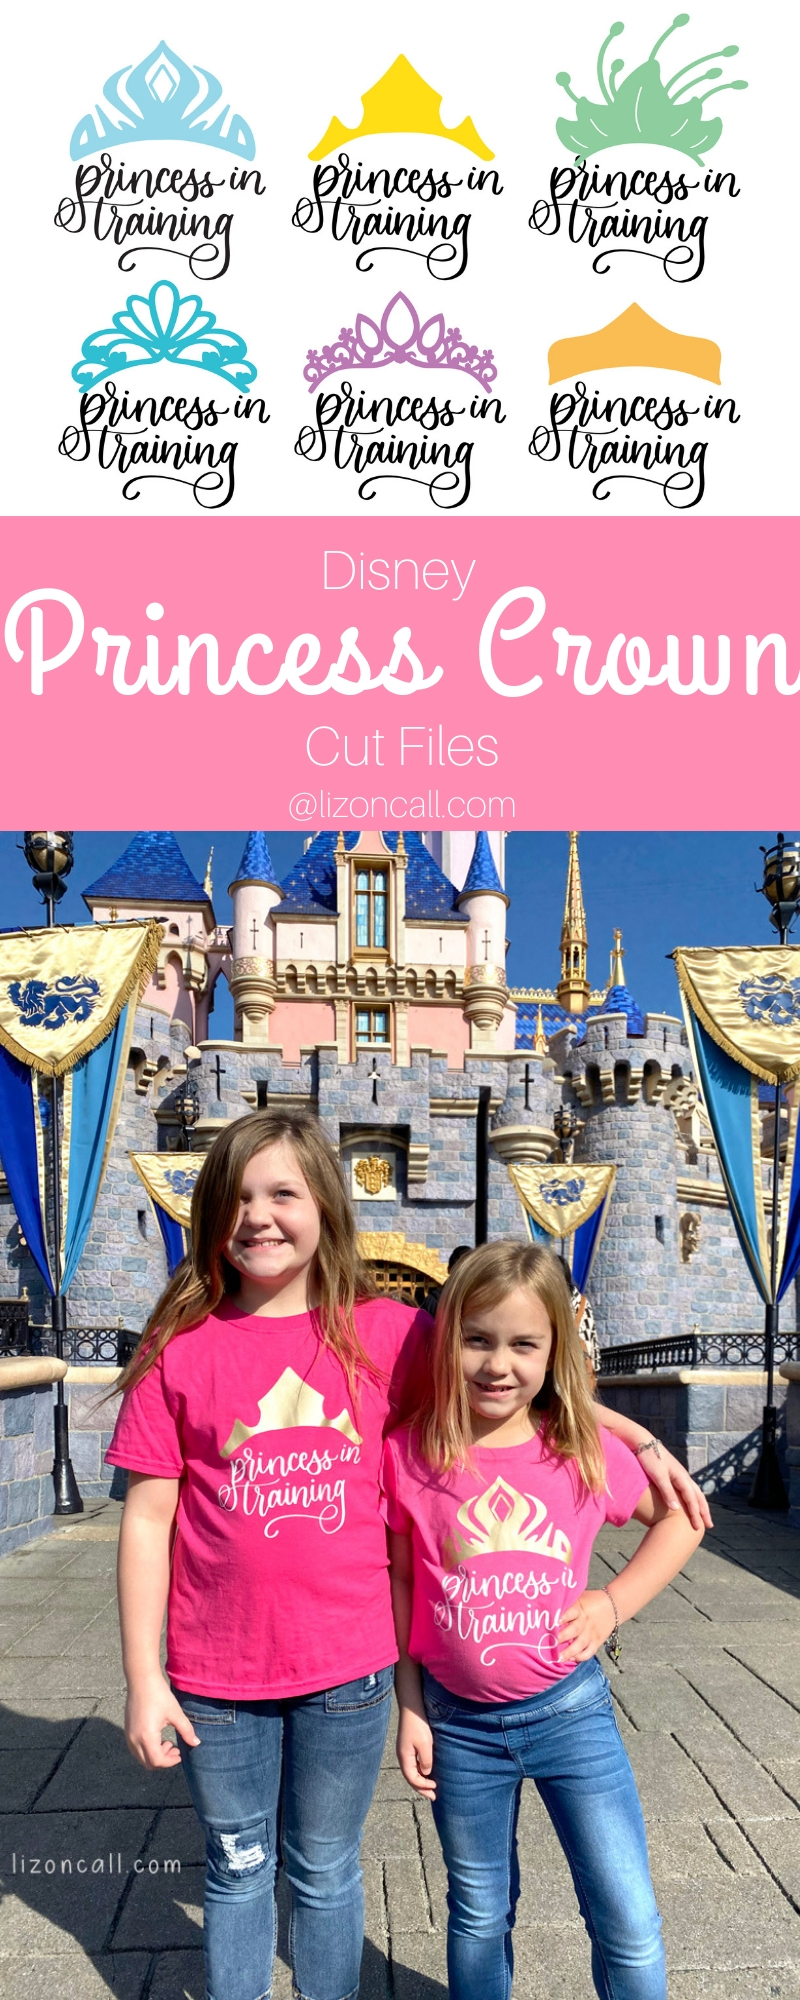 titled pinnable image with 2 girls wearing princess in training shirts in front of the castle